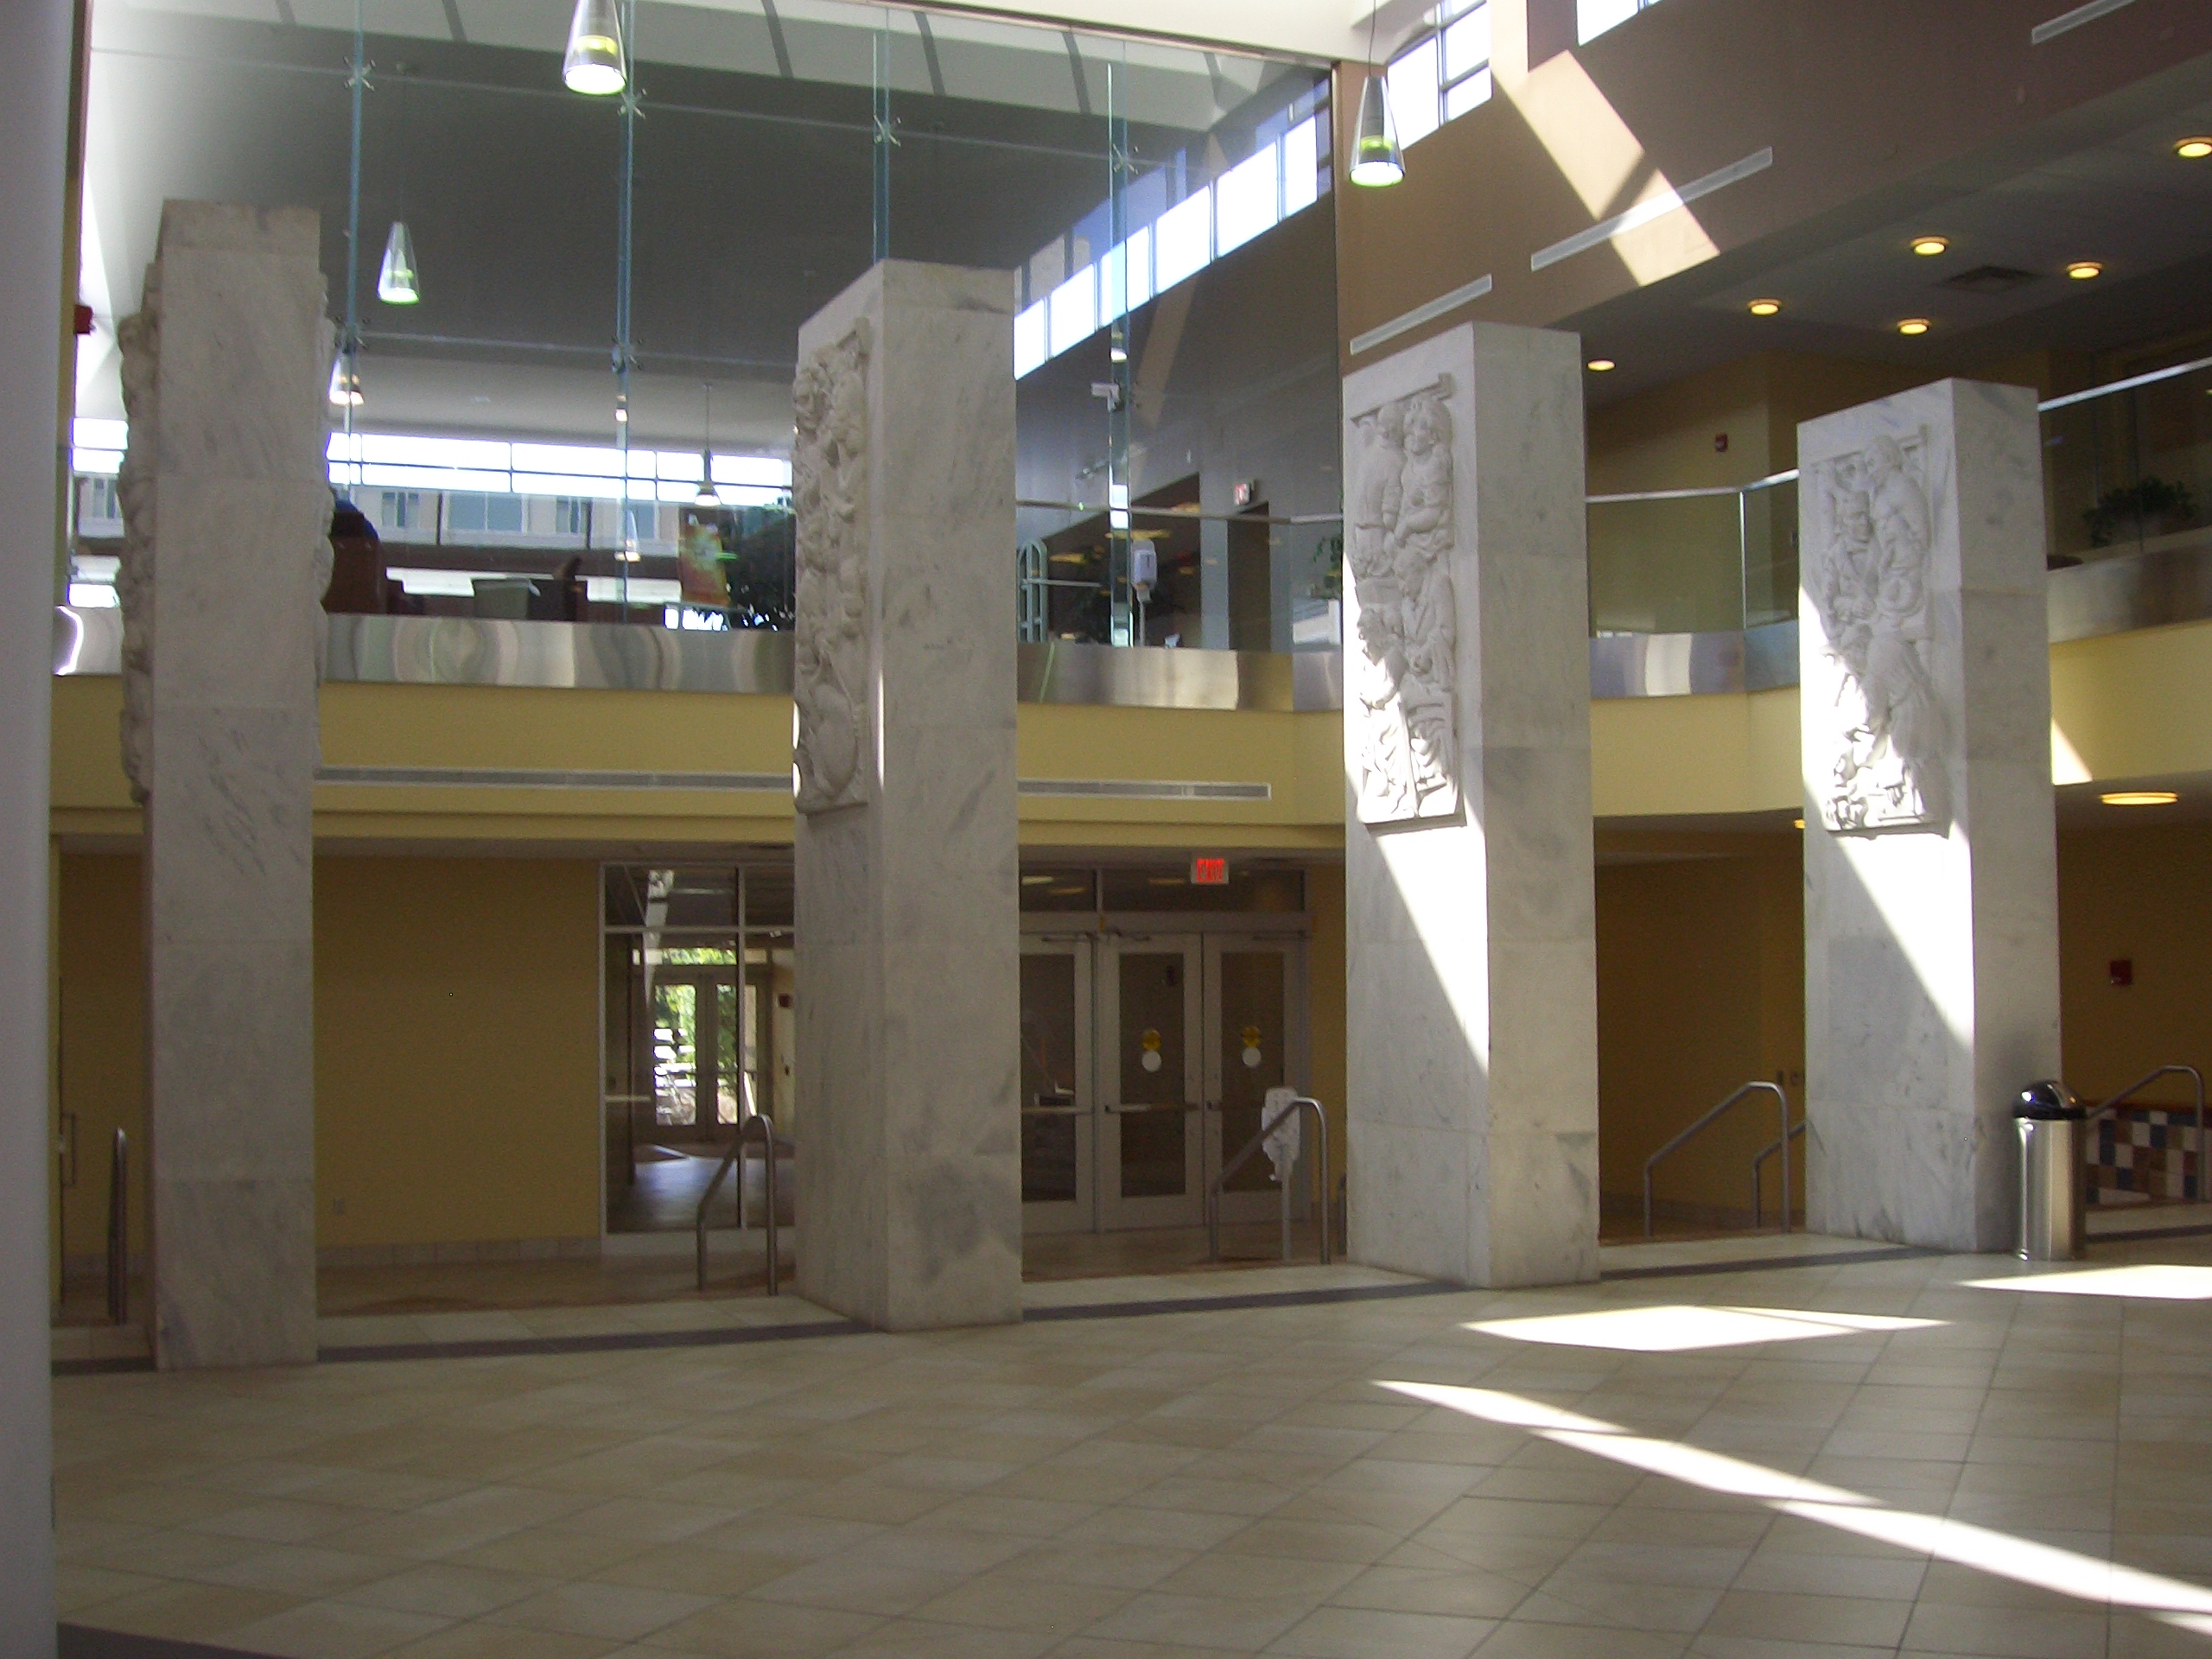 Pylons and Entrance to WVU Health Sciences Library